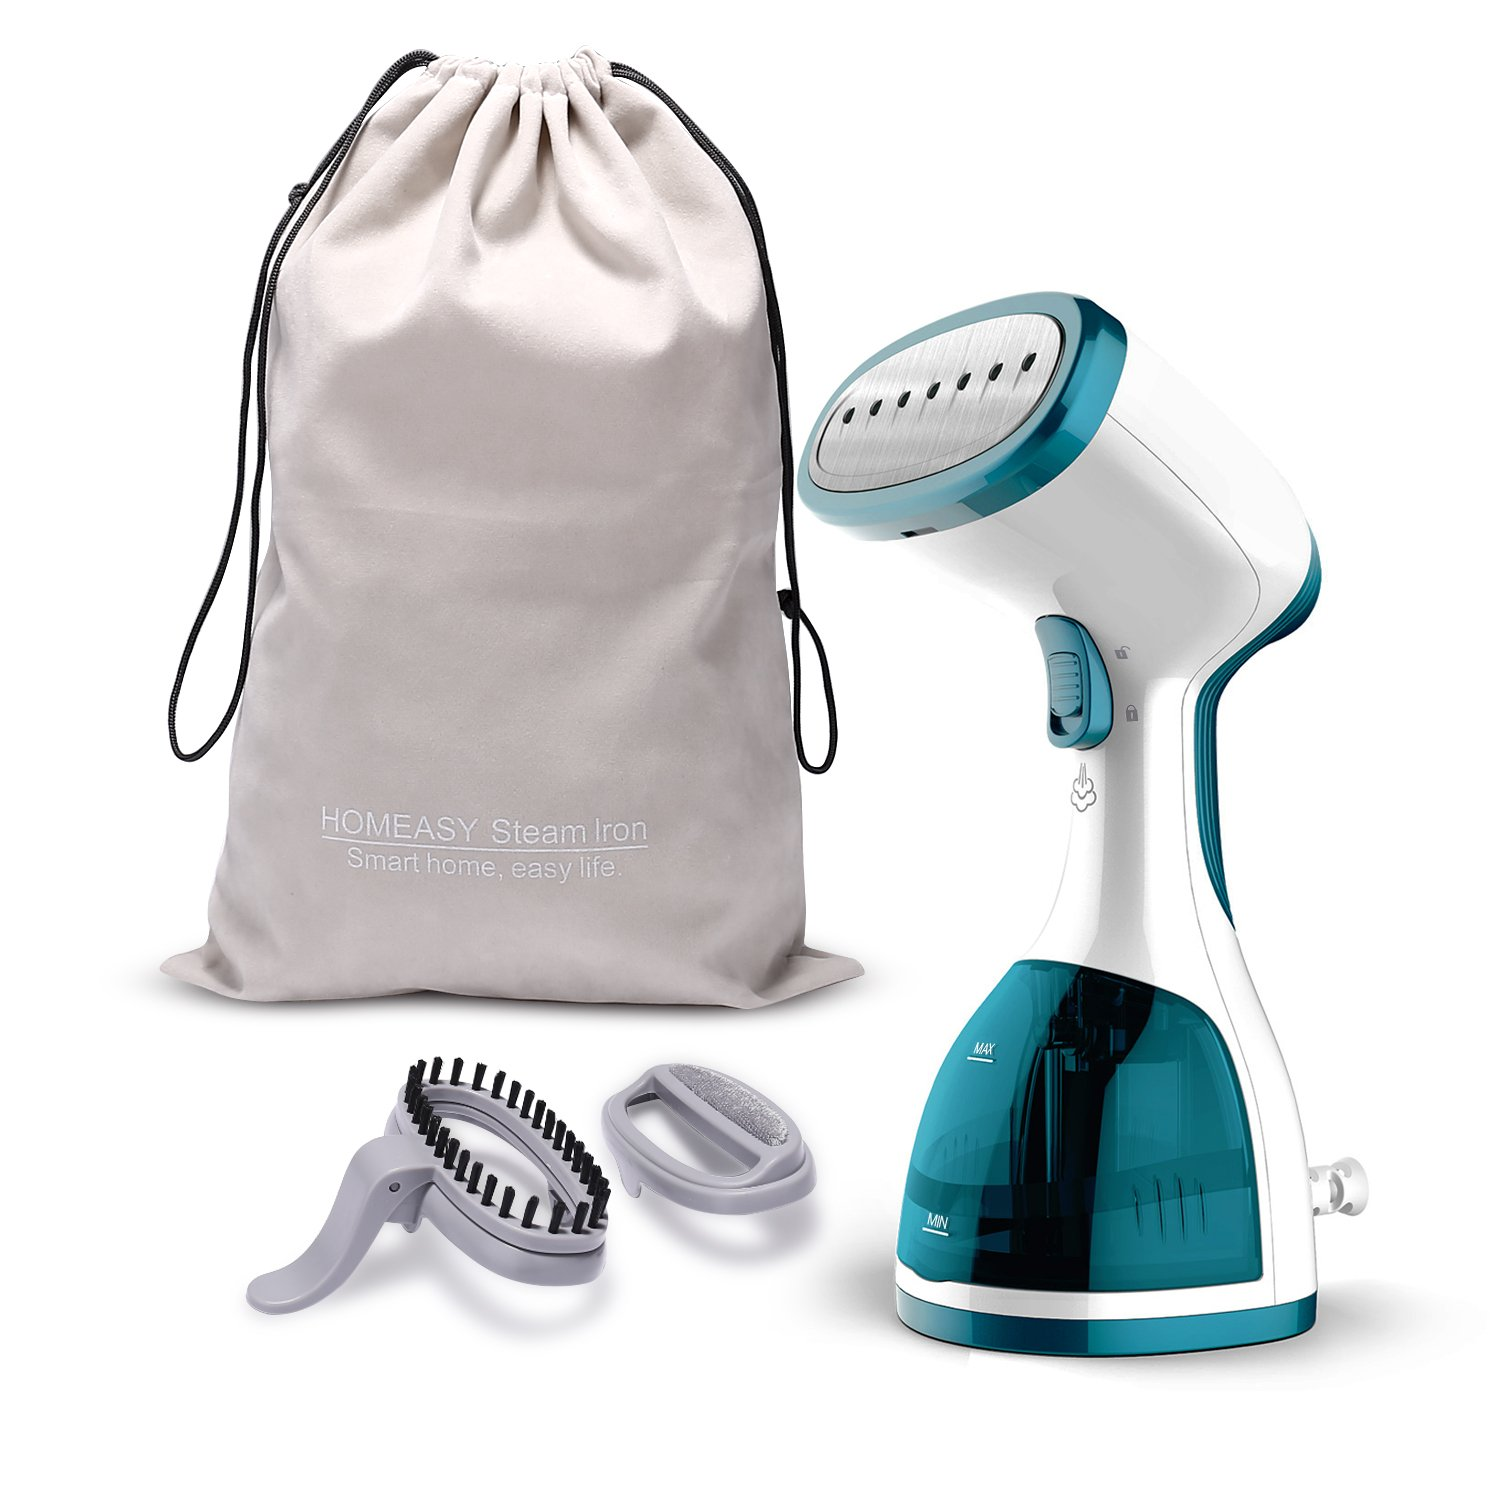 Small Satisfaction Guarantee homeasy Clothes Garment 5 in 1 Handheld Fabric Steamer Wrinkle Remover with Fast Heat-up Function for Home and Travel Green